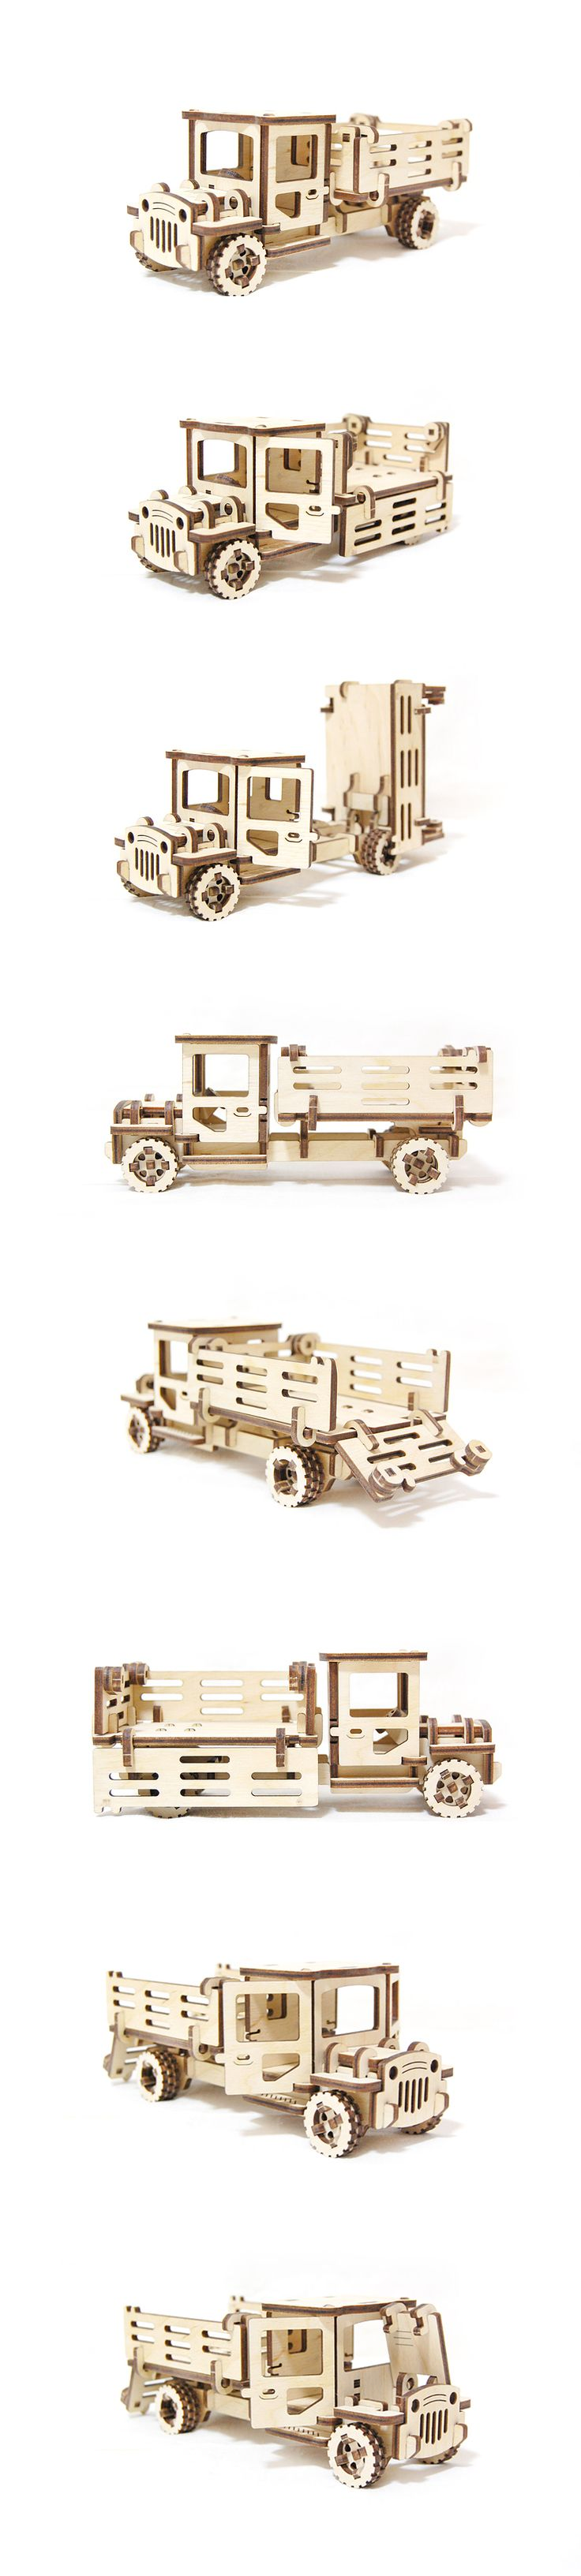 3D Wooden Truck Puzzle Toy